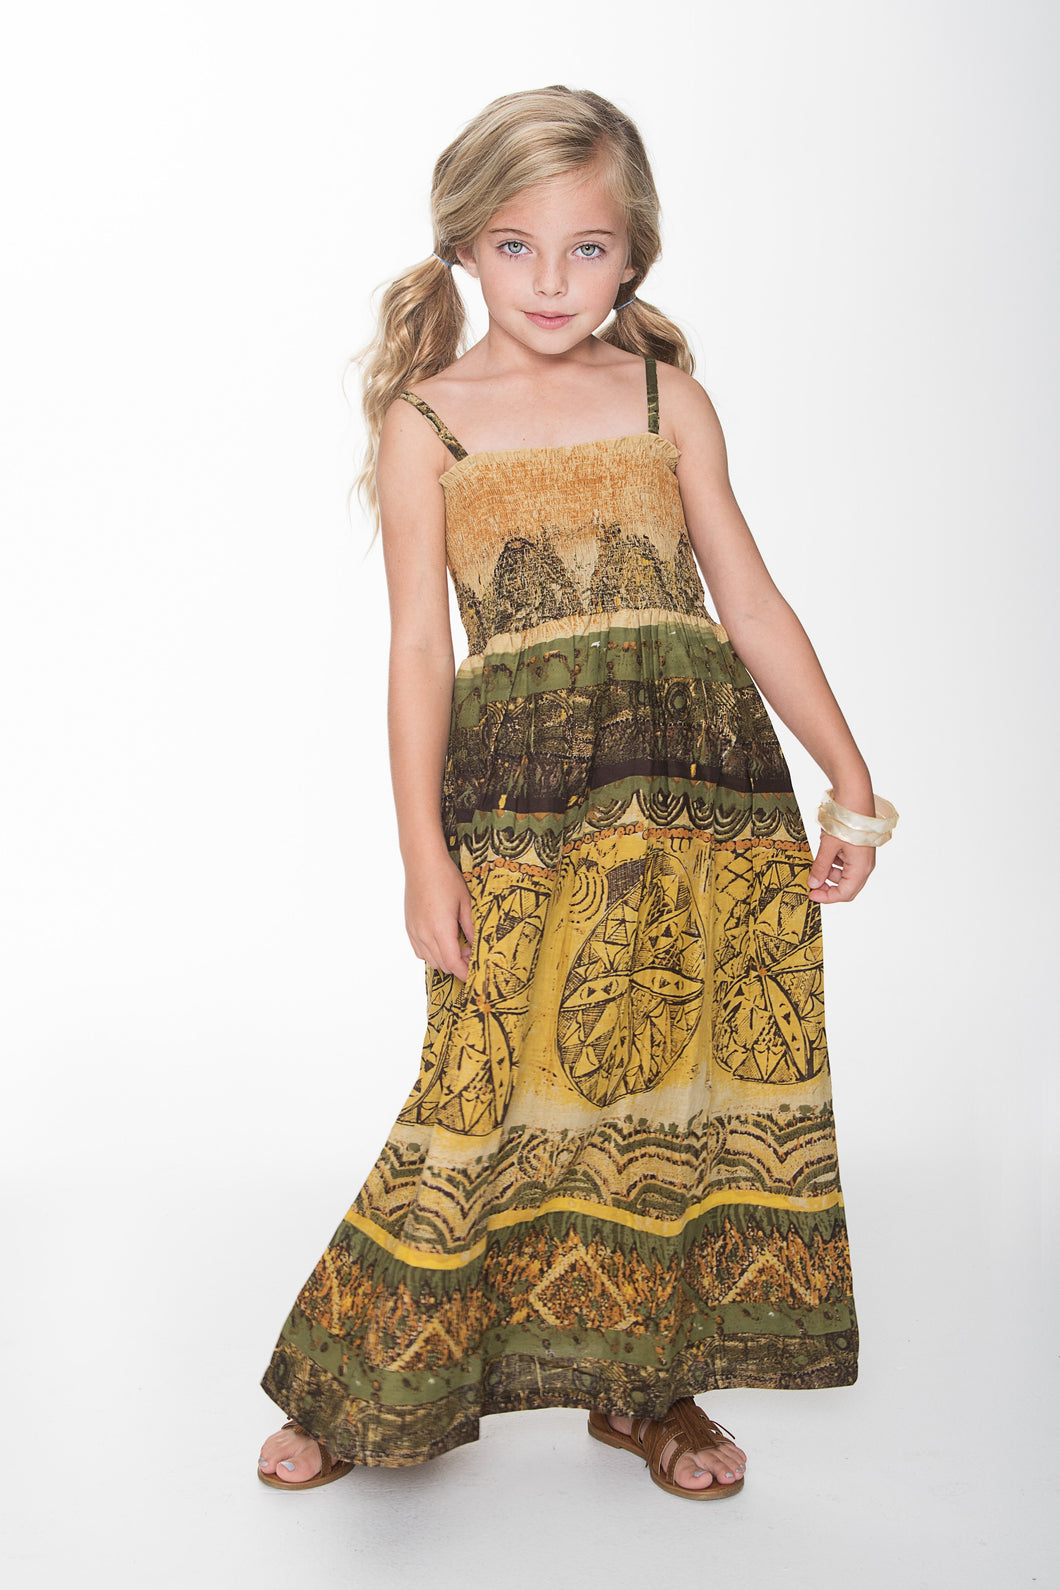 Mustard and Green Maxi Dress - Kids Clothing, Dress - Girls Dress, Yo Baby Online - Yo Baby